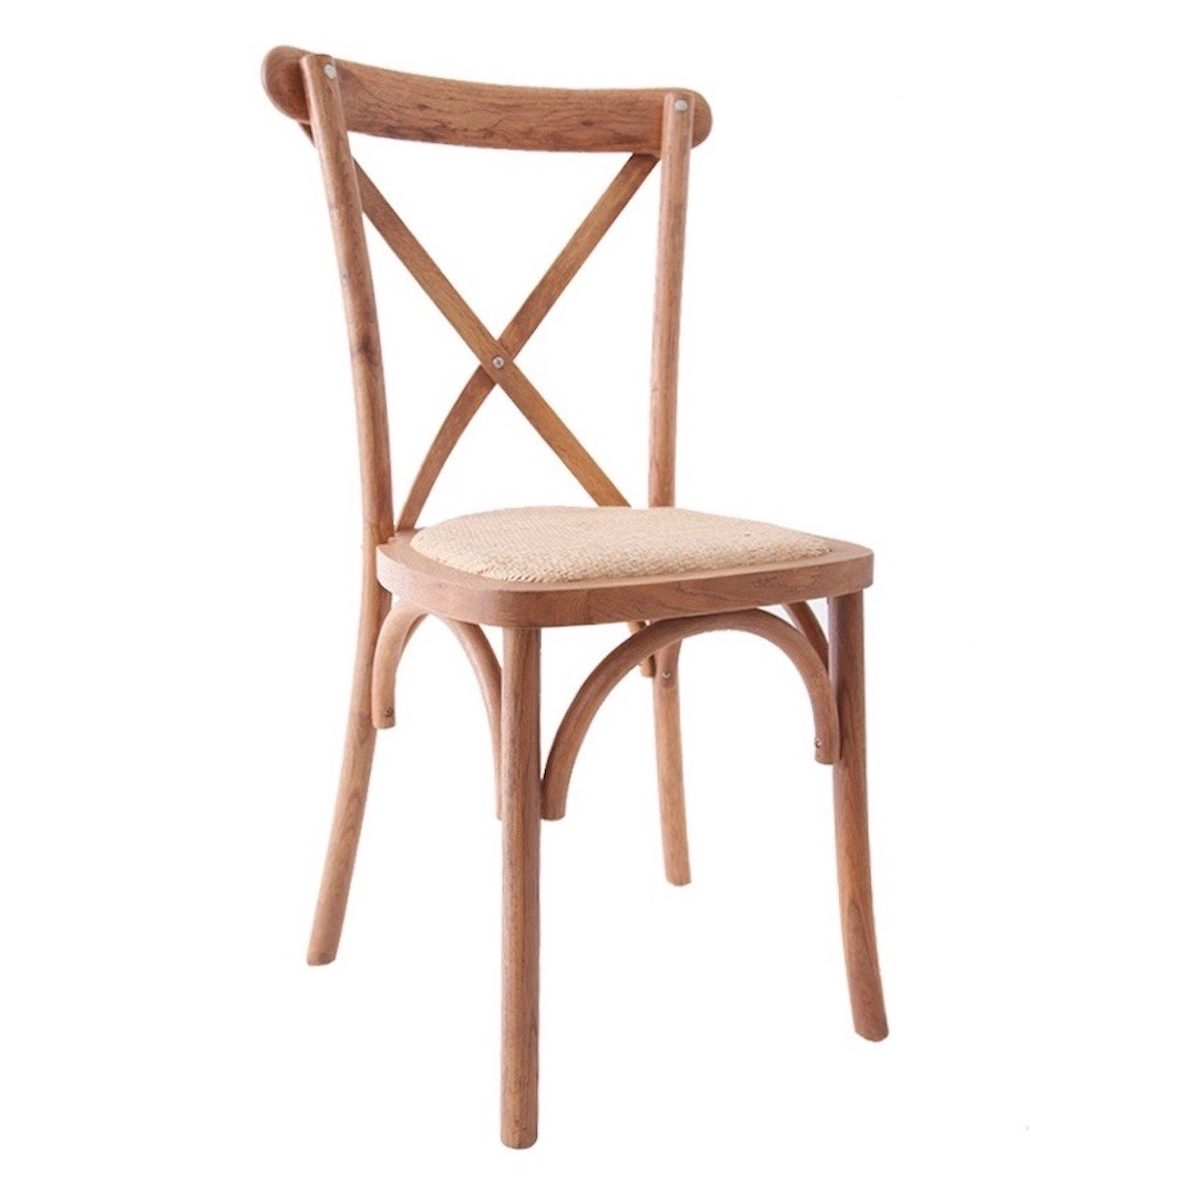 Chaises De Reception Chaise Cross Back Assise Rotin Tressé